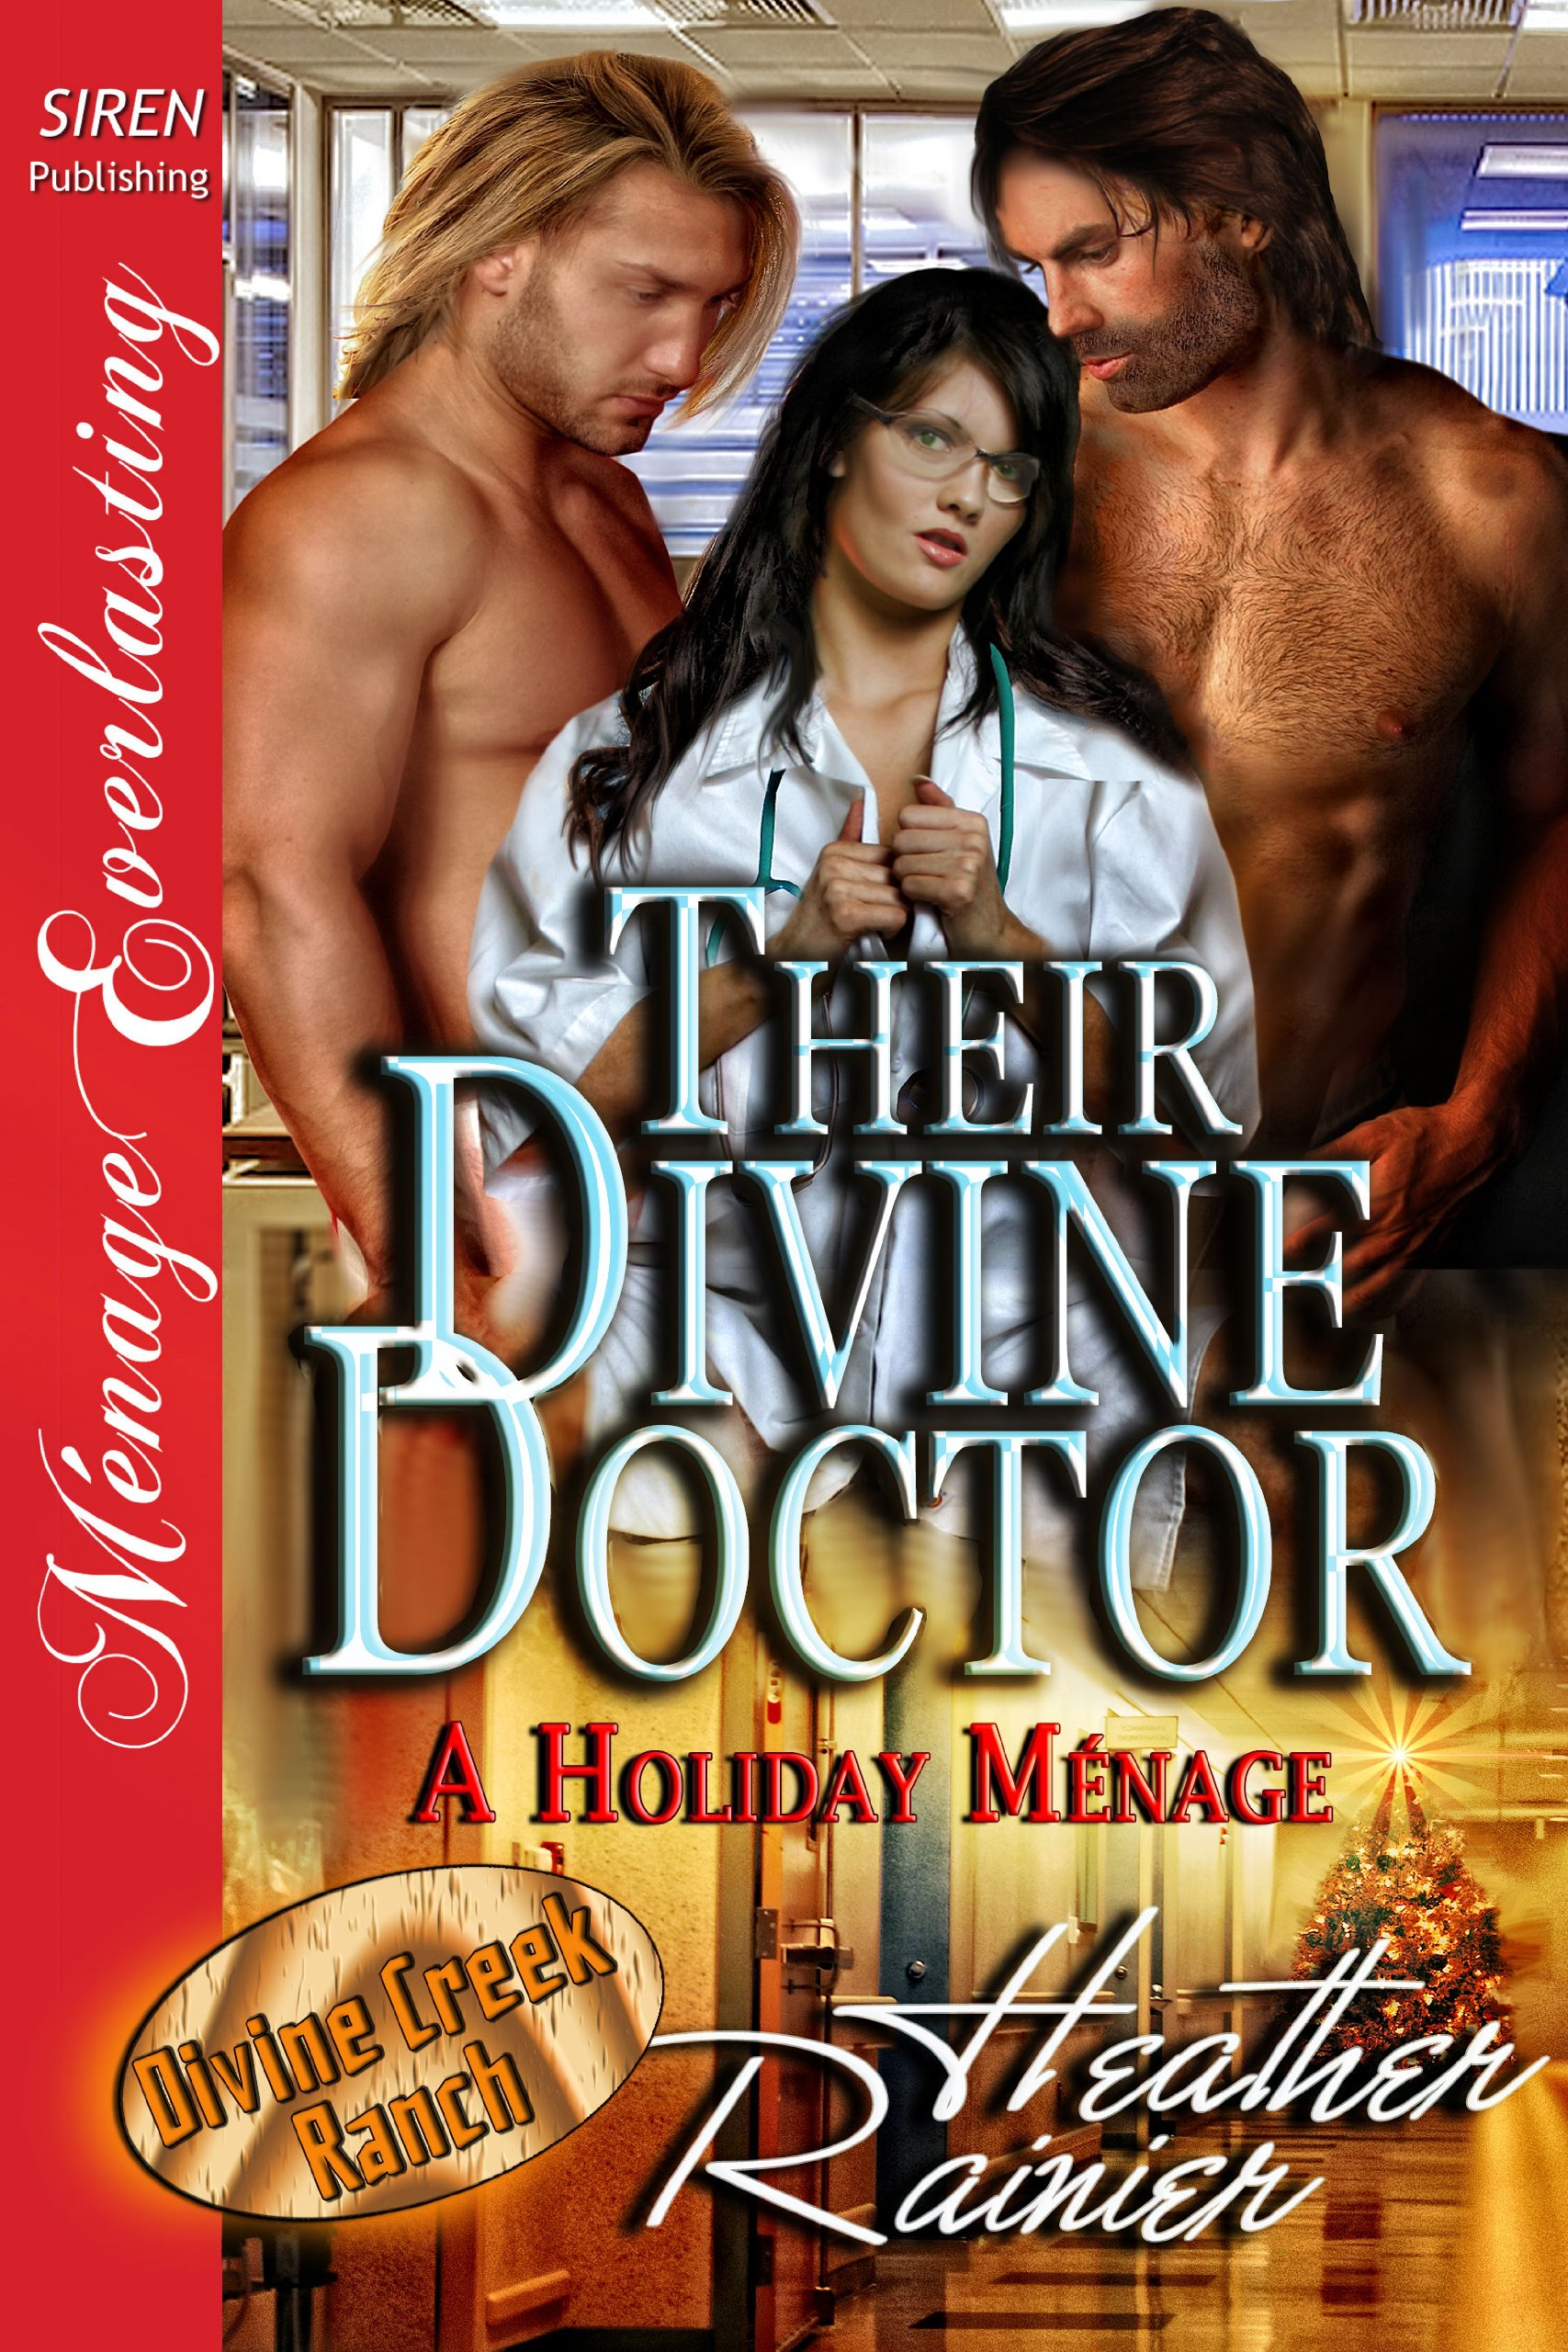 Their Divine Doctor, a Holiday Menage [Divine Creek Ranch 9] (Siren Publishing Menage Everlasting) (Siren Menage Everlasting) PDF